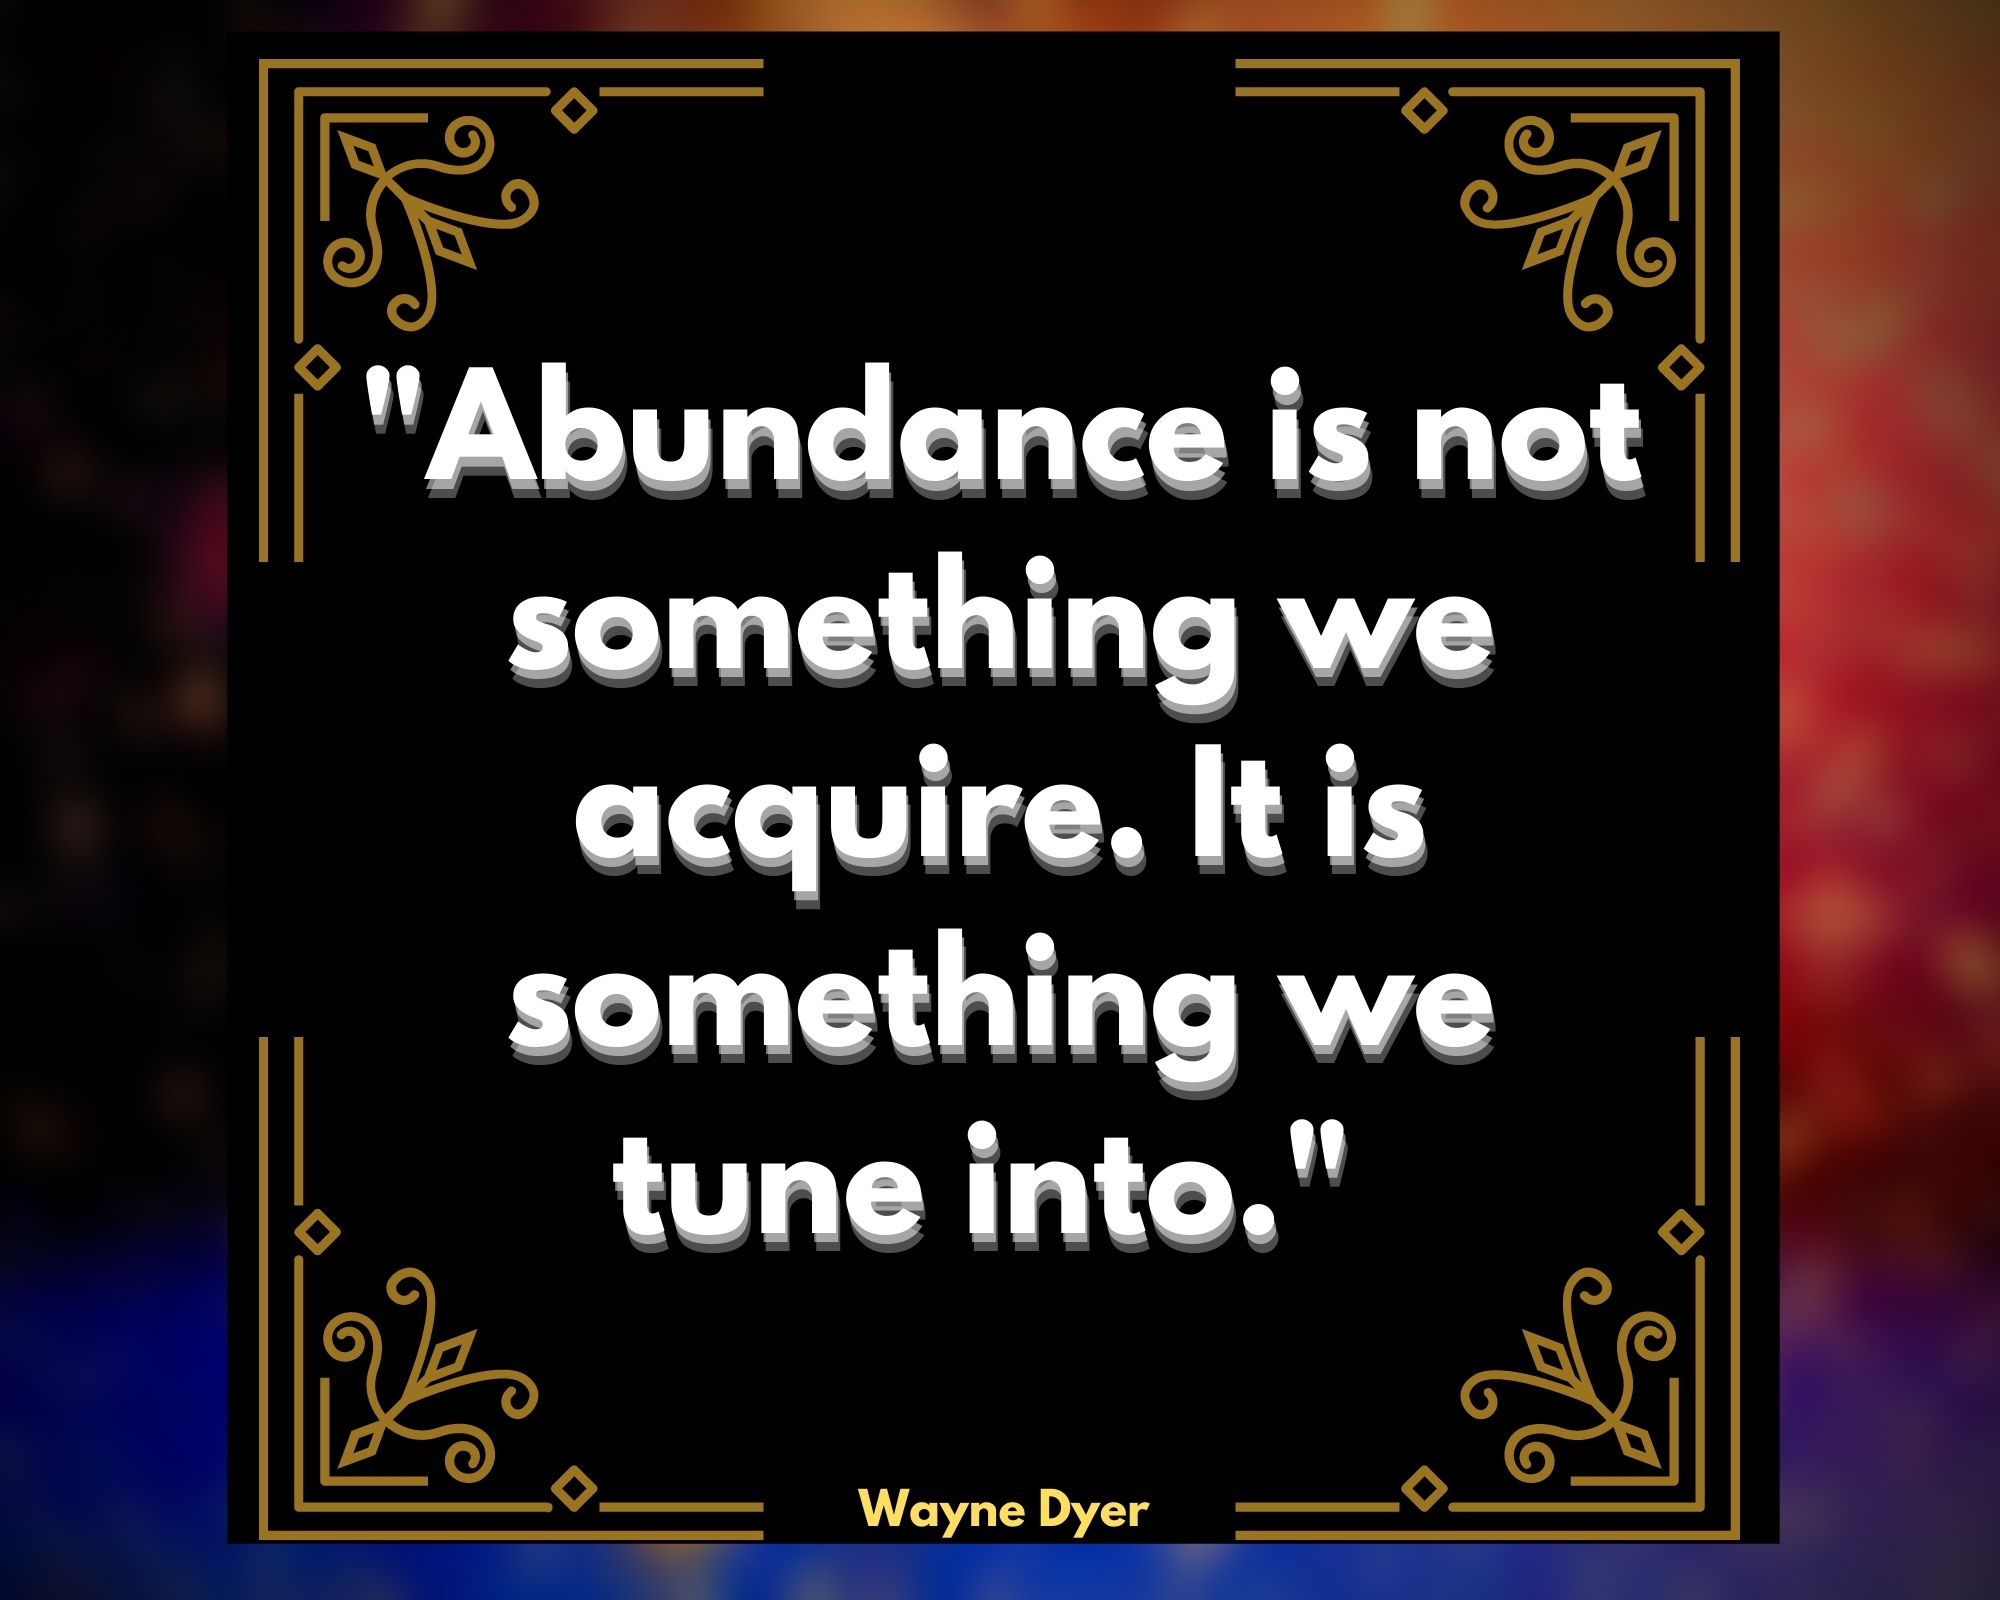 Quotes by Wayne Dyer